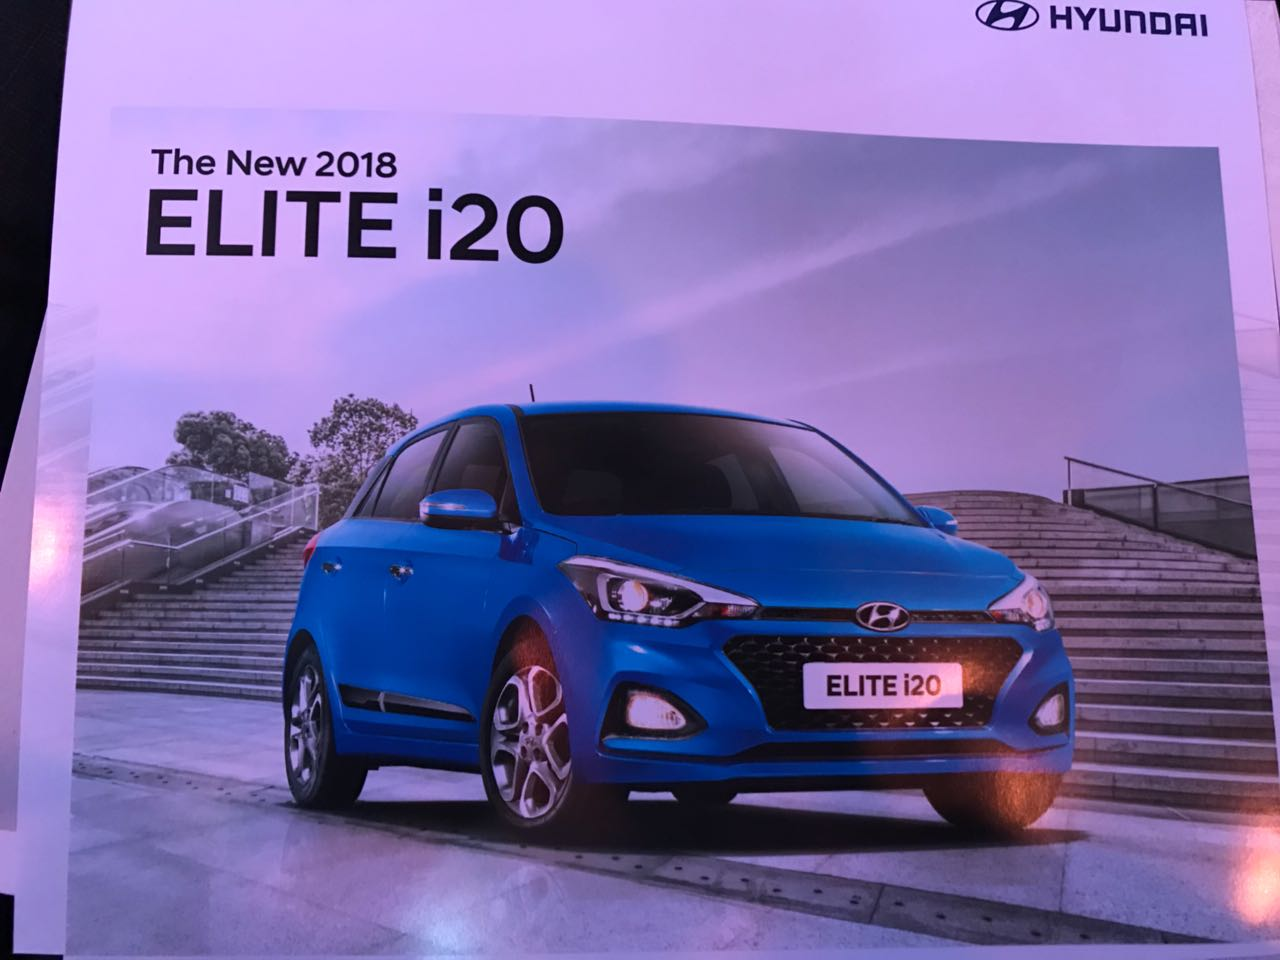 "<p><span style=""color:rgb(102, 102, 102); font-family:arial; font-size:14px"">The 2018 Hyundai Elite i20 </span></p>"